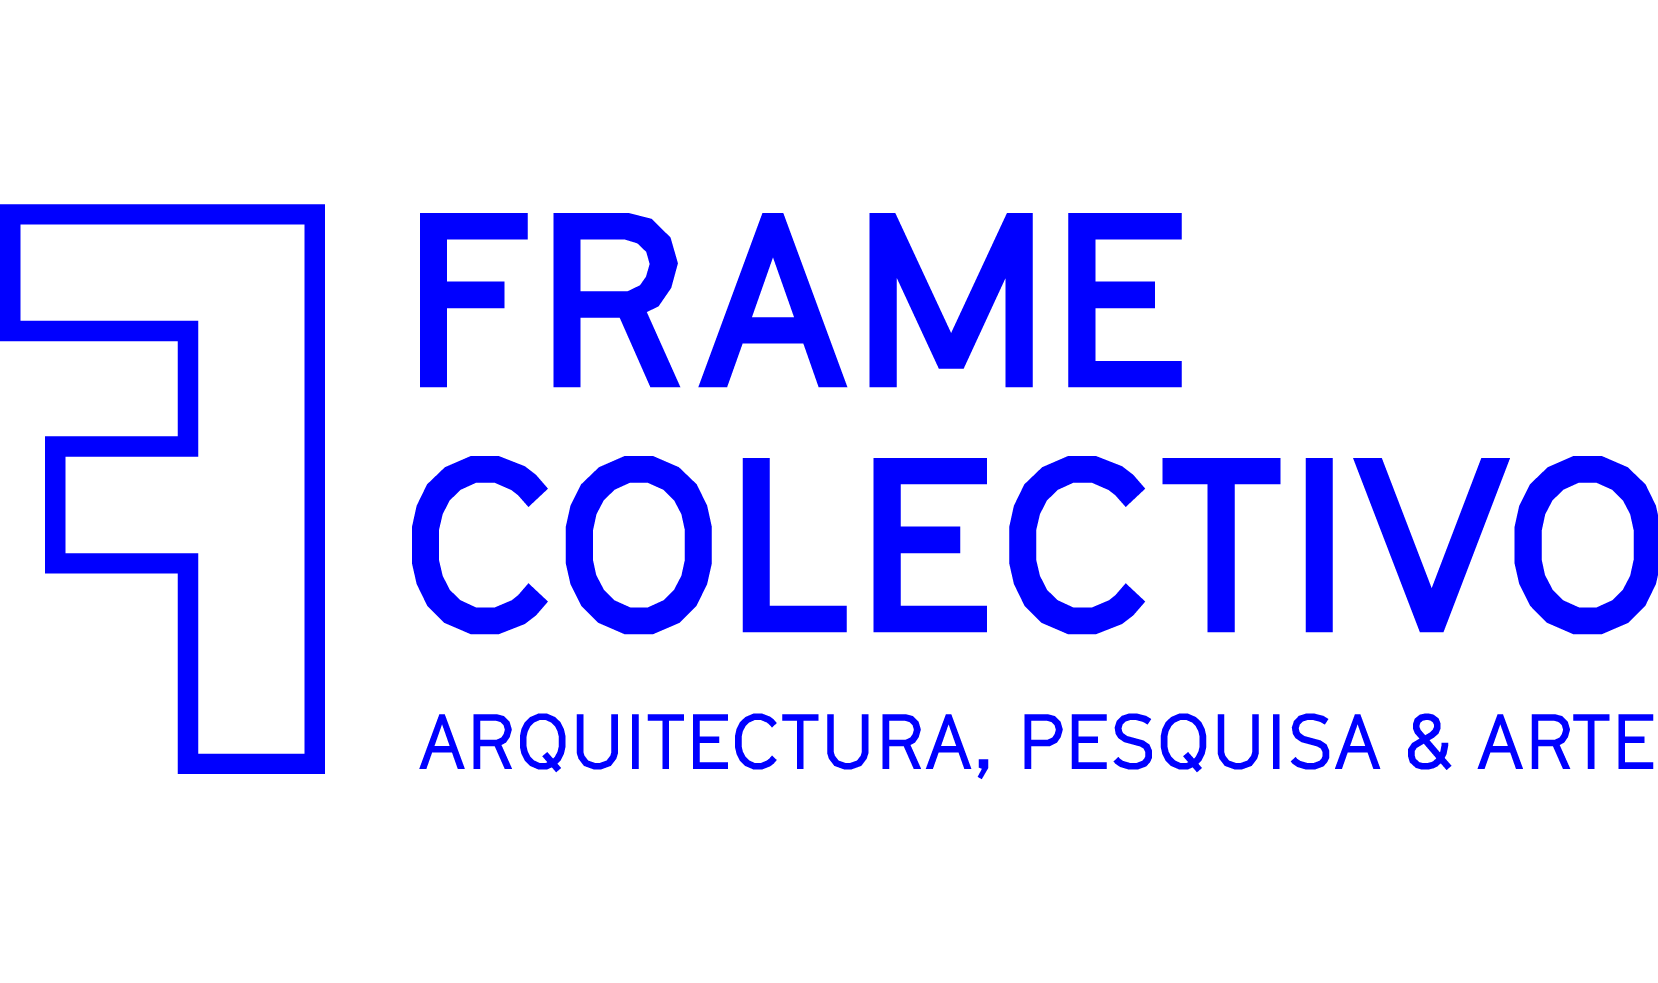 Frame Colectivo